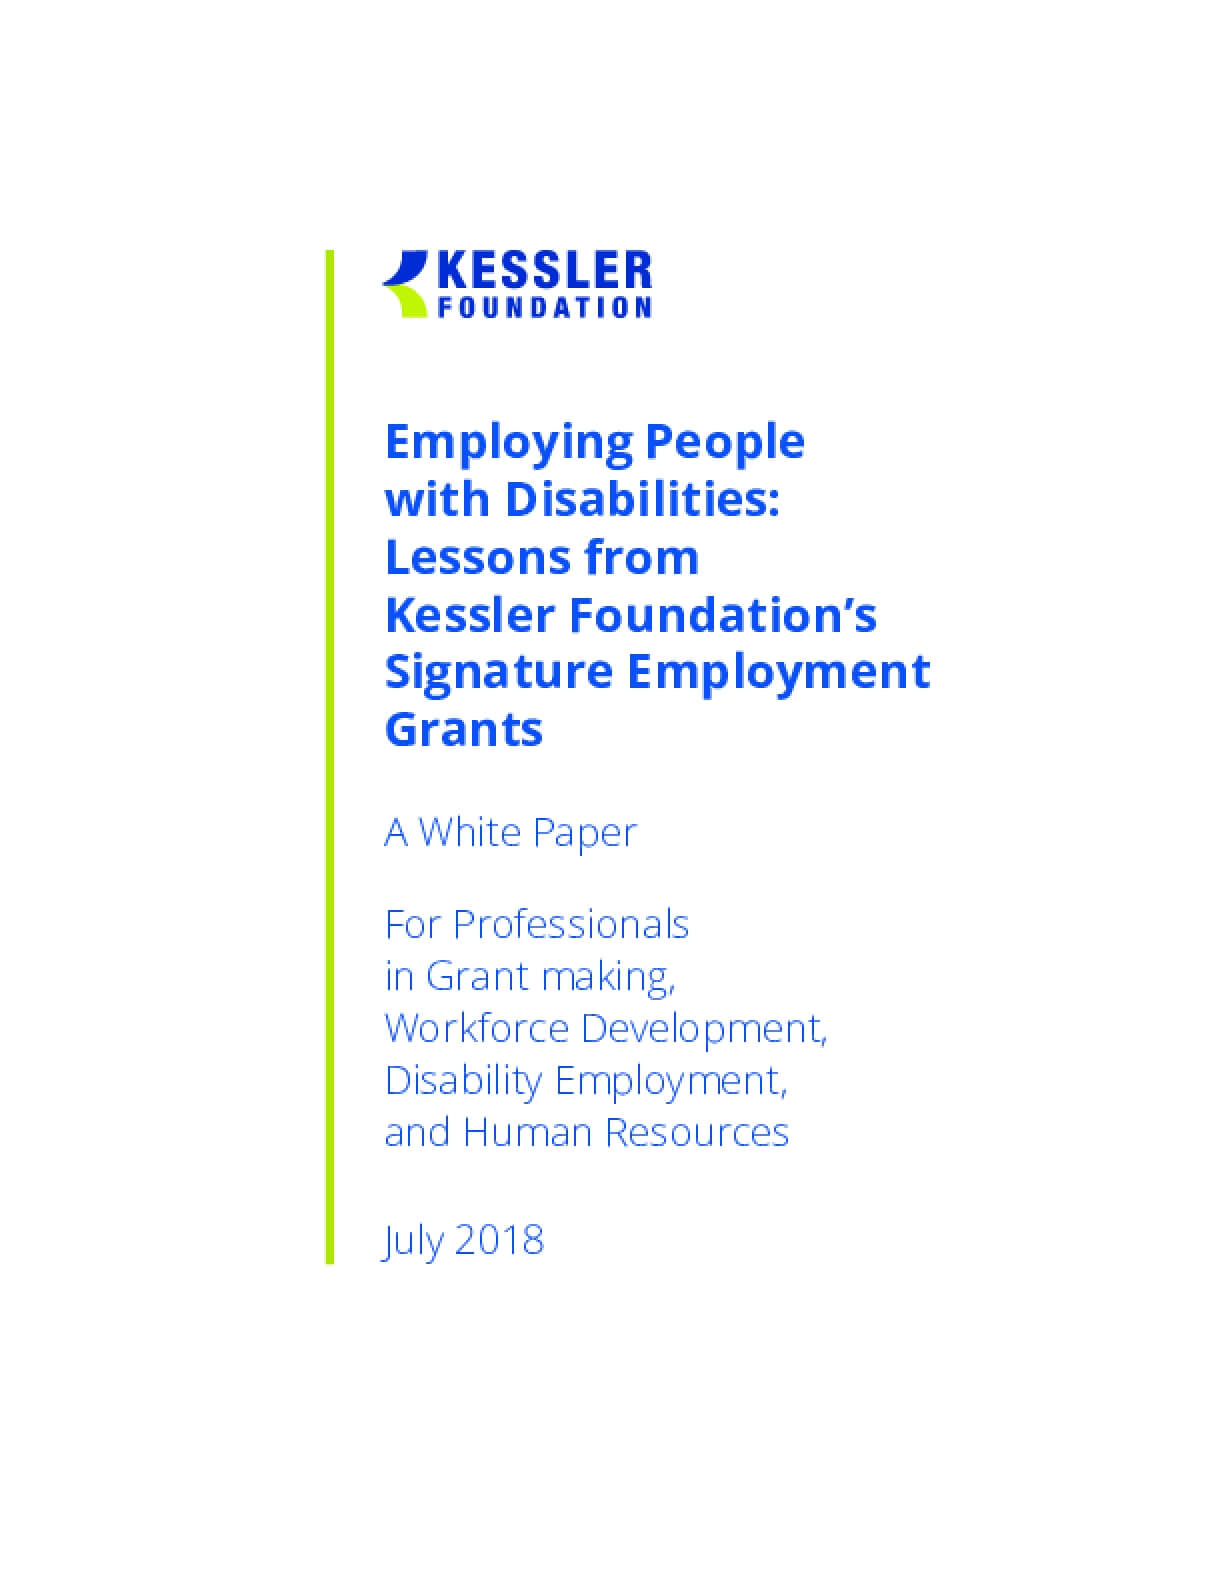 Employing People with Disabilities: Lessons from Kessler Foundation's Signature Employment Grants